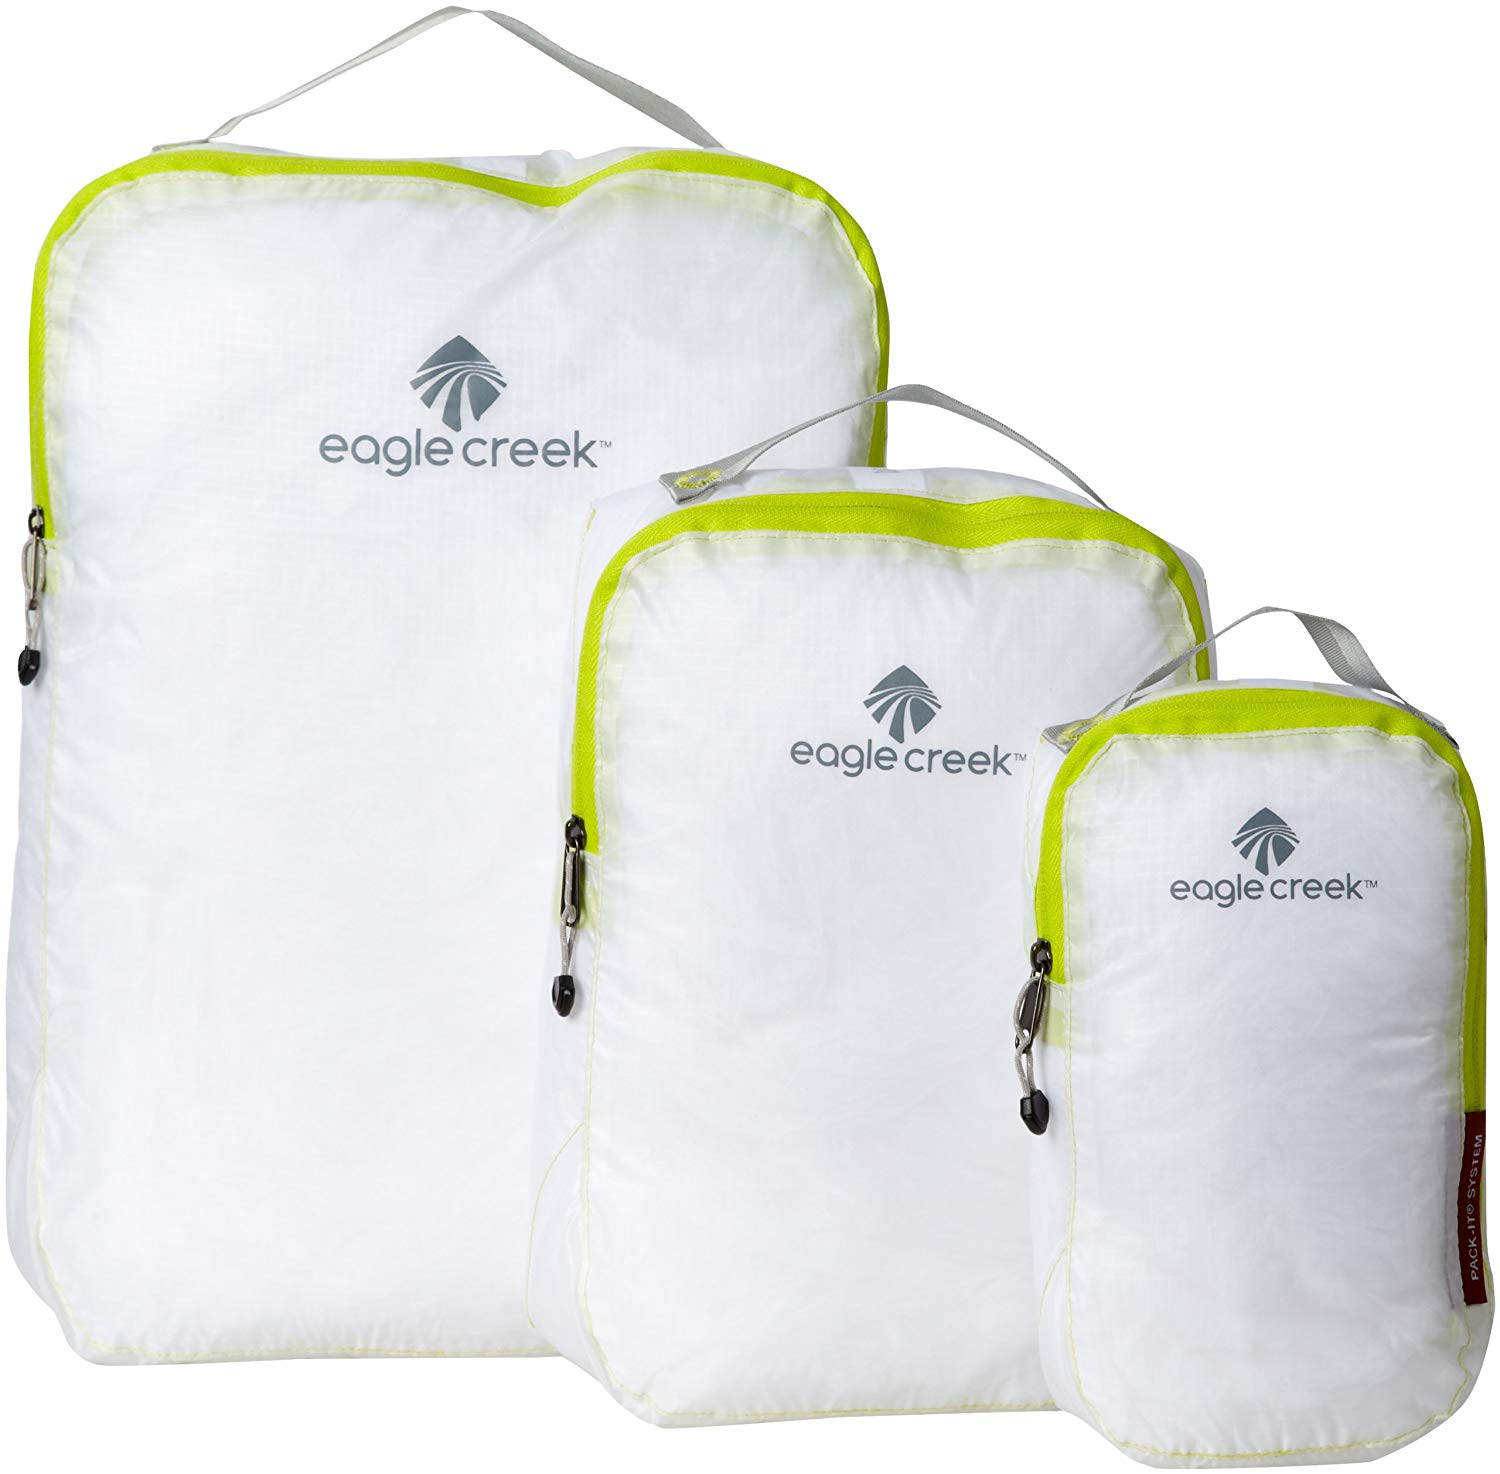 Eagle Creek Packing Cubes.jpg